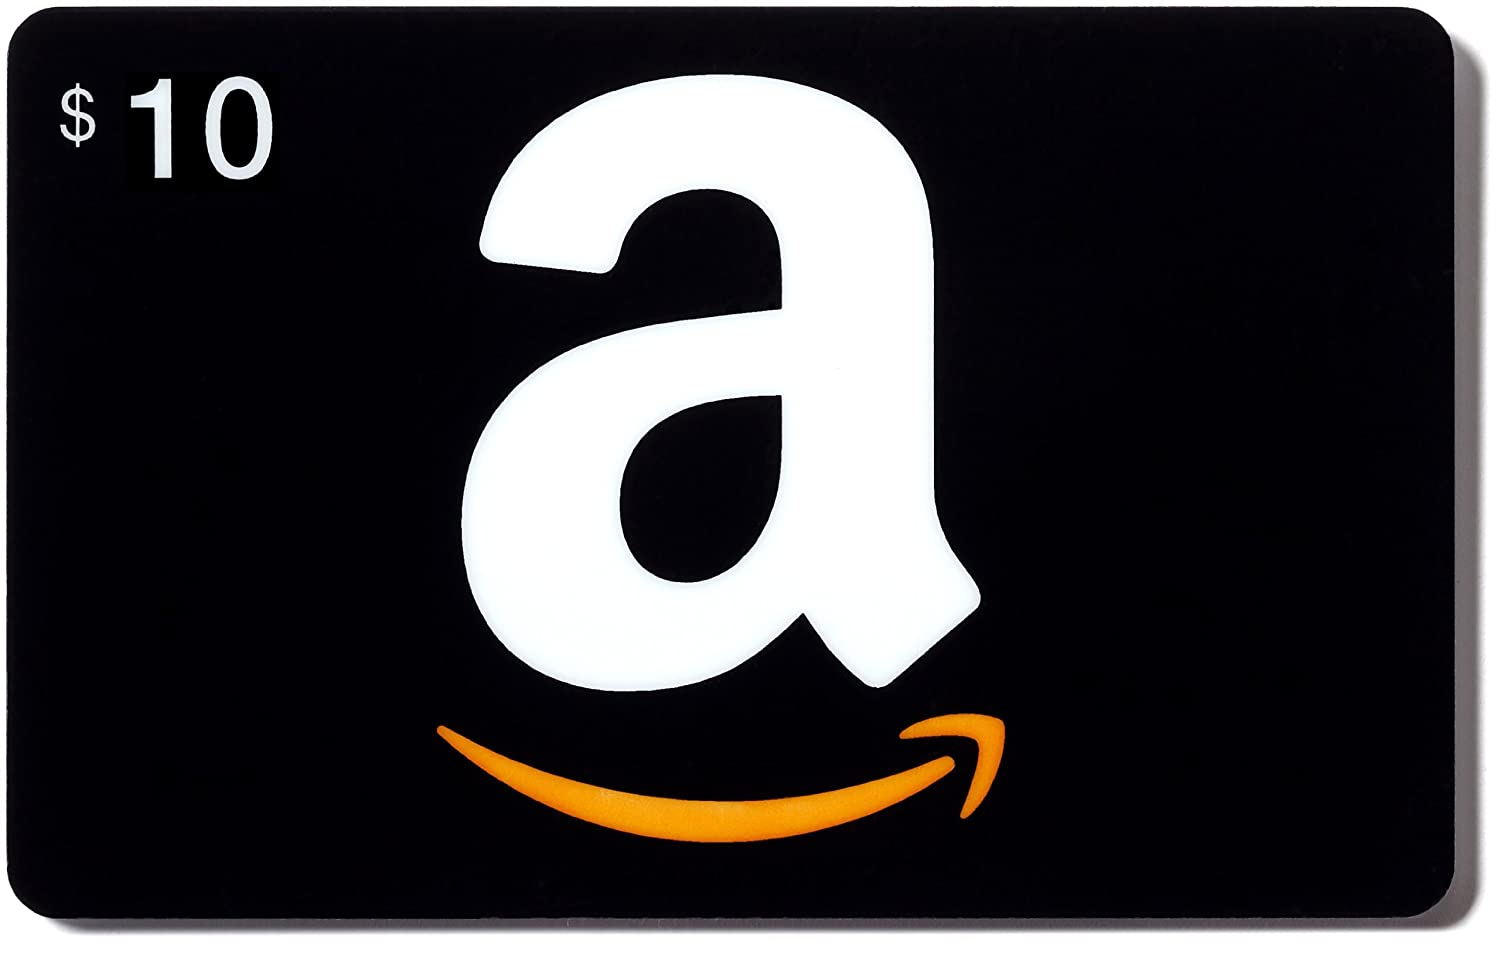 Rewards Gallery :: Get Free Amazon items,Retail Gift cards + Instant Paypal Payout